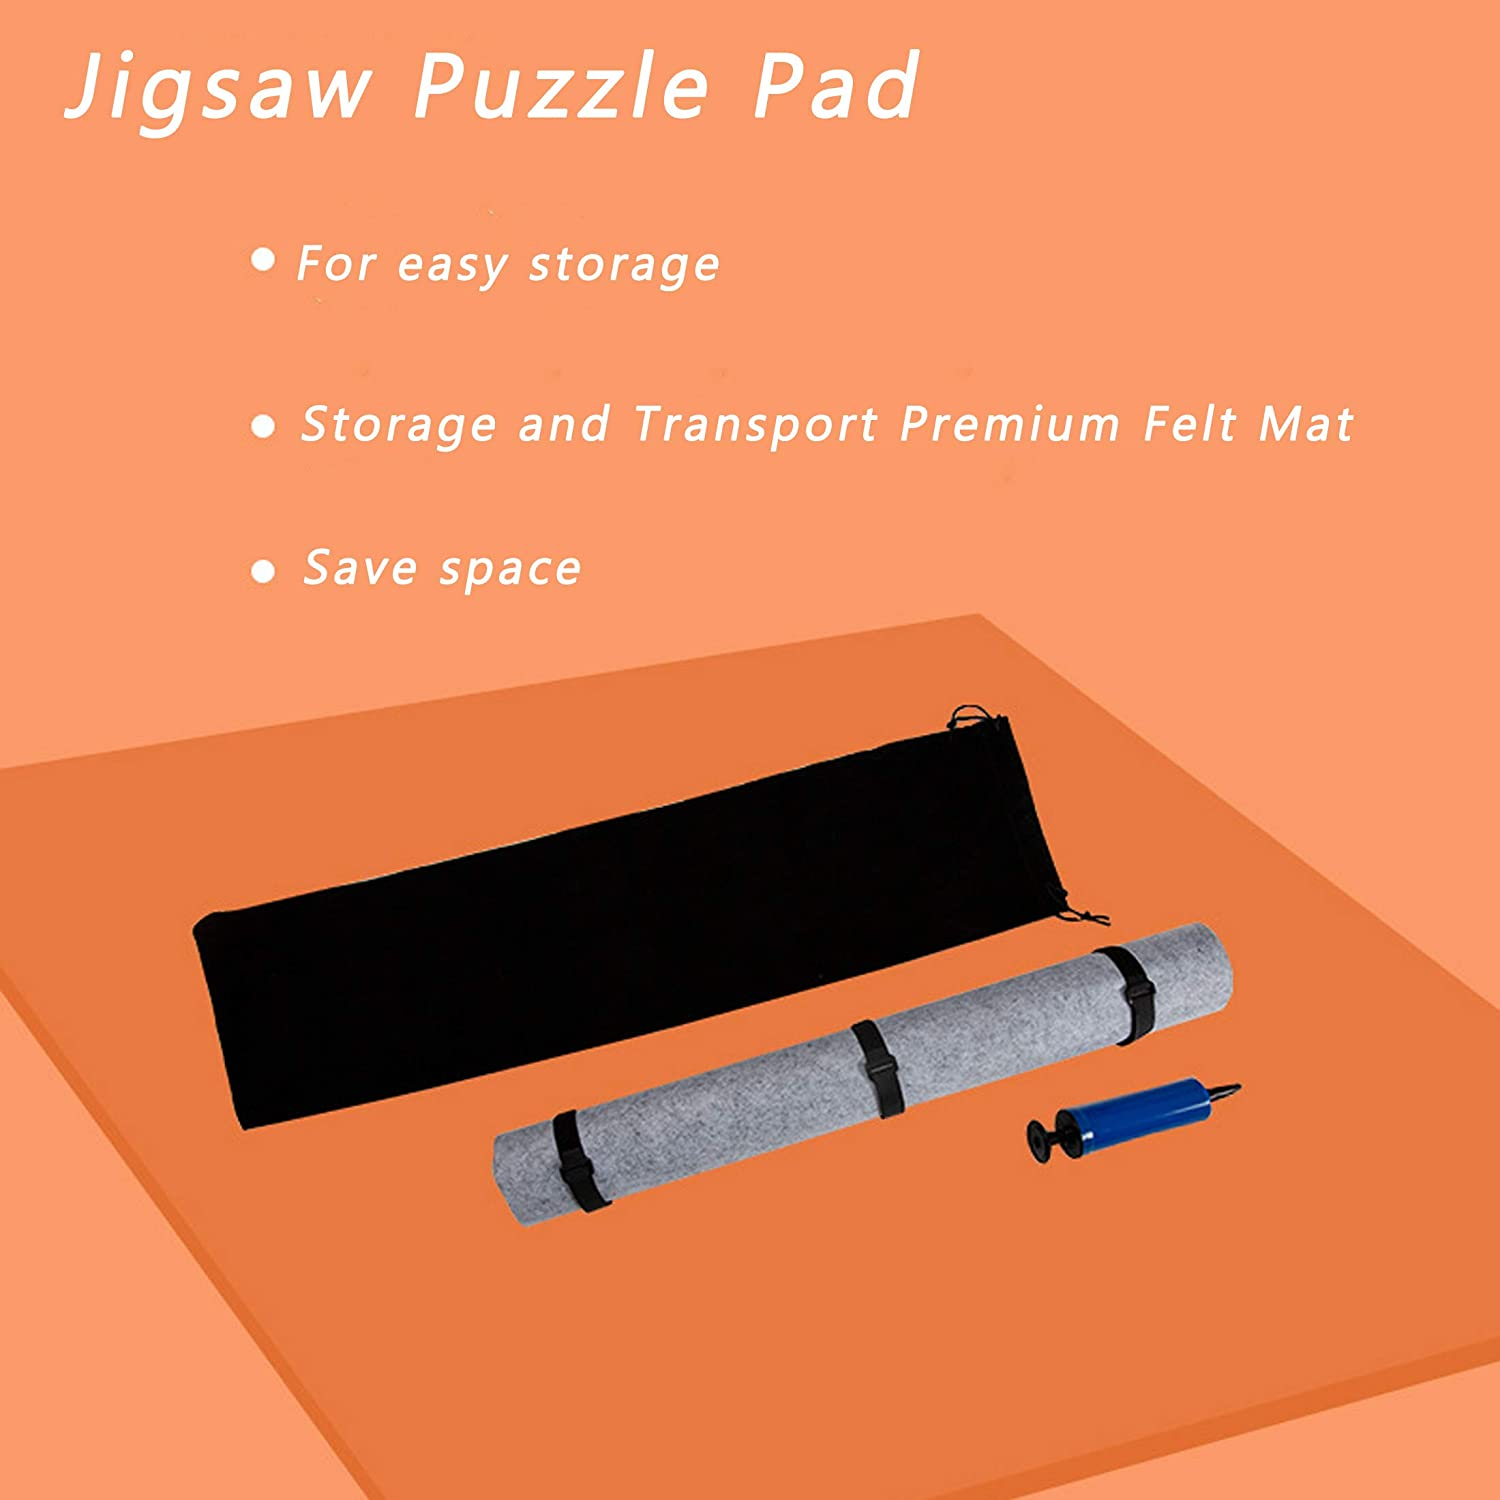 Can Store Unfinished Puzzles LUUFAN Jigsaw Puzzle Storage Roll Up Mat 1,500 Pieces Puzzle Pad Saver Tool Storage and Transport Premium Grey Felt Mat Grey